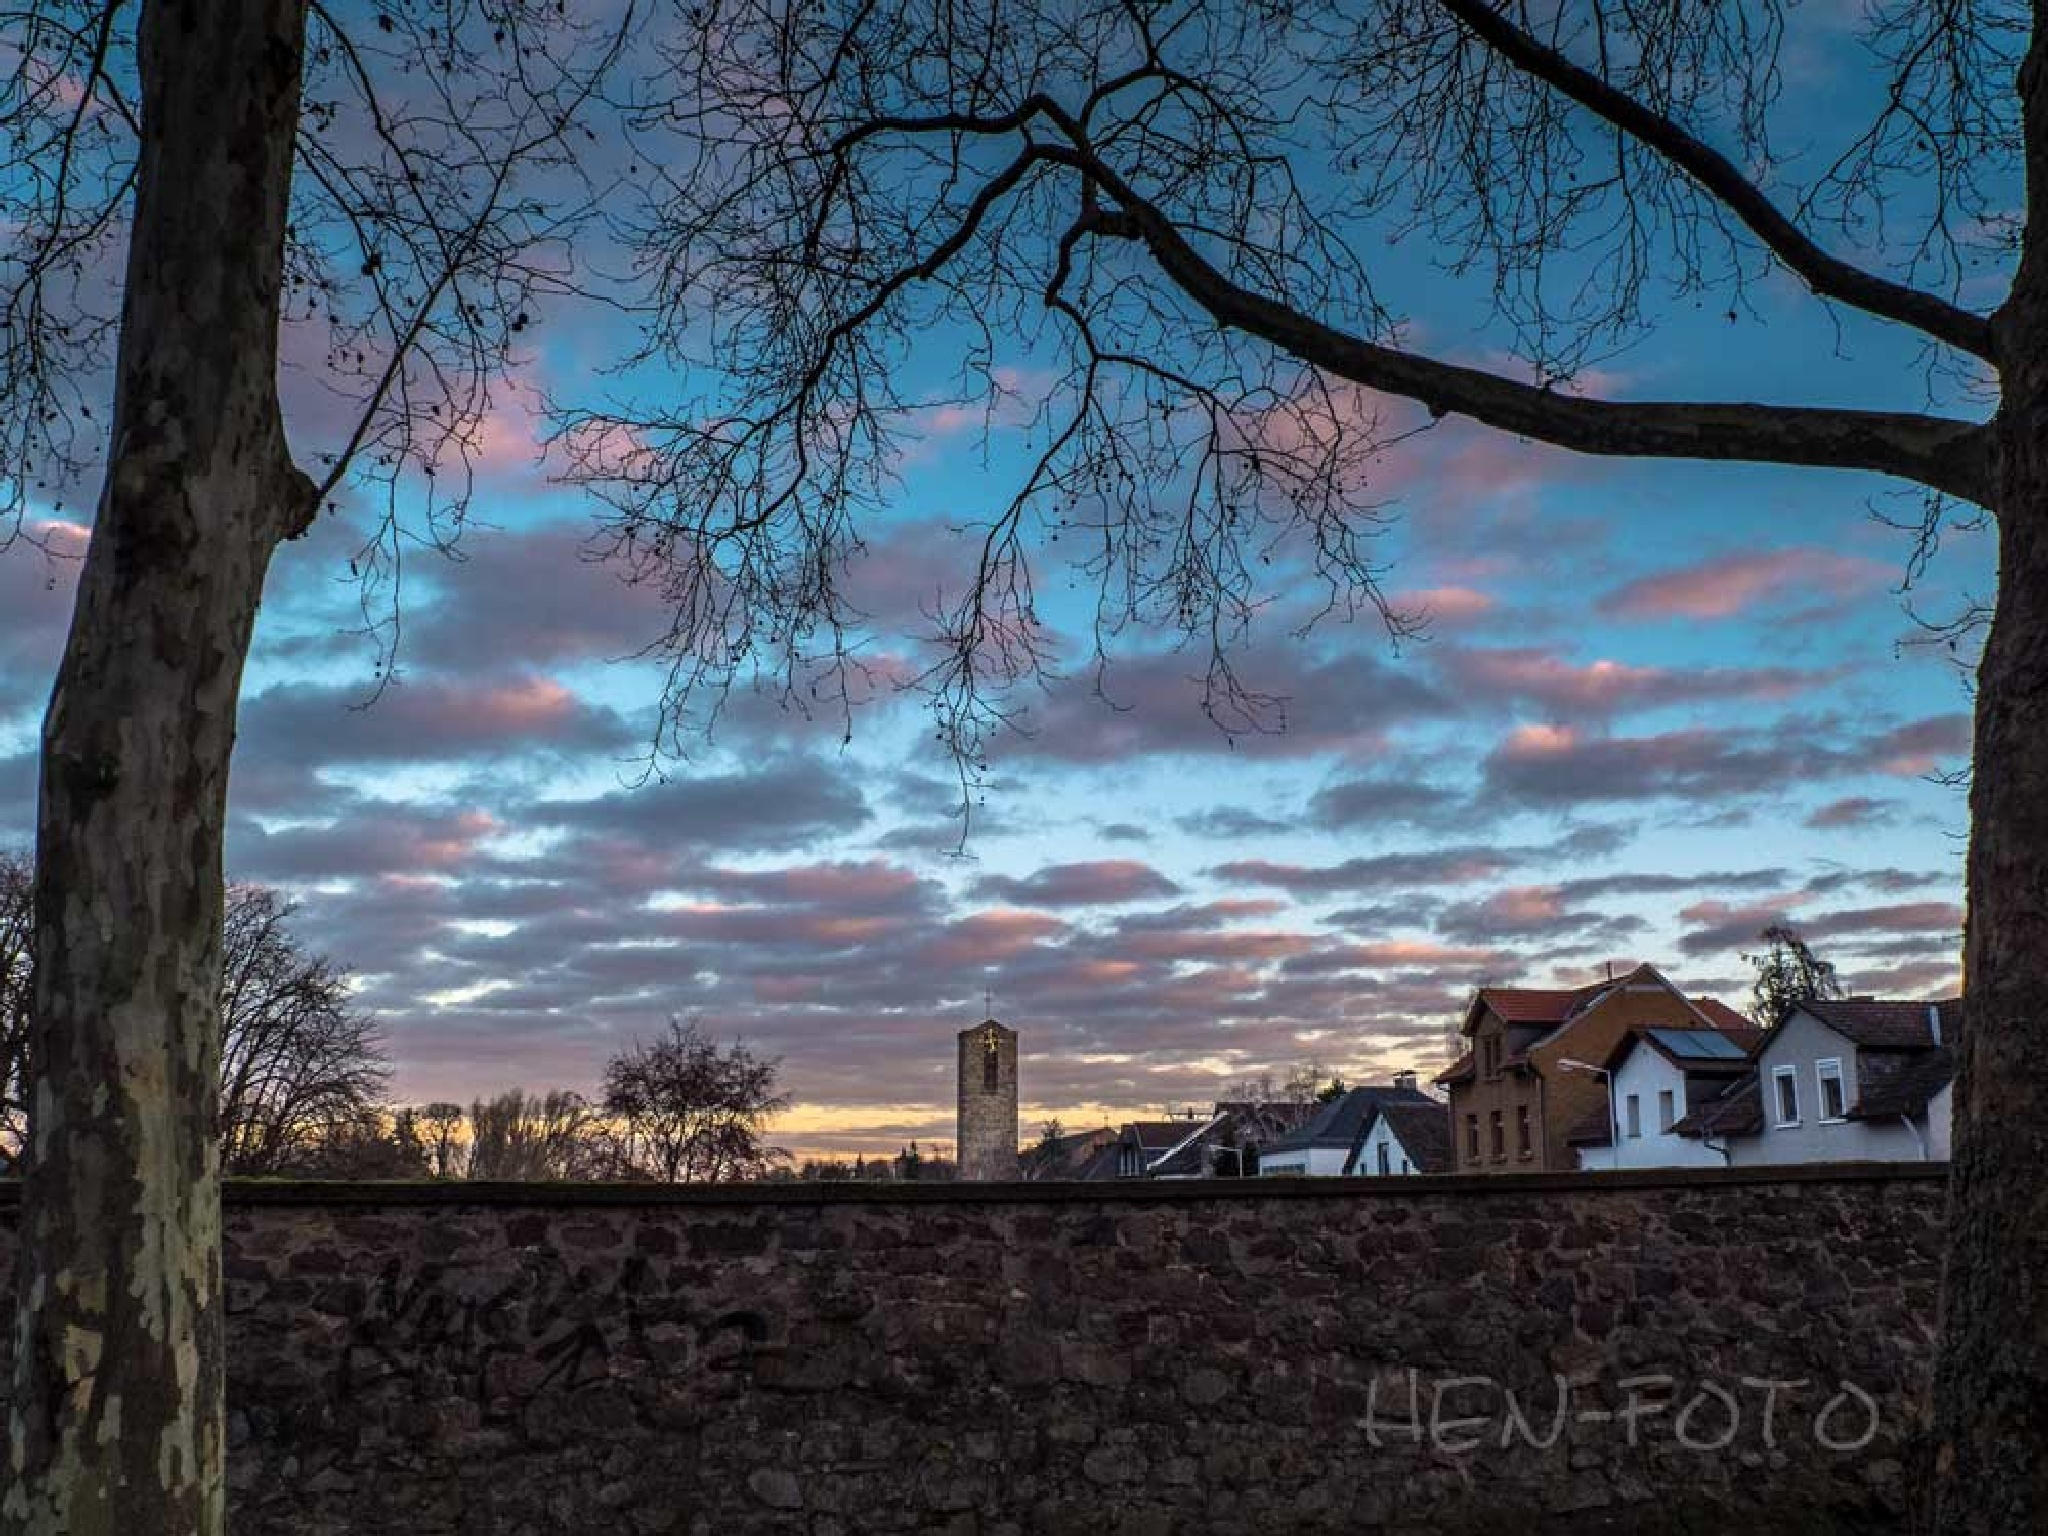 Good morning clouds by HEN-FOTO